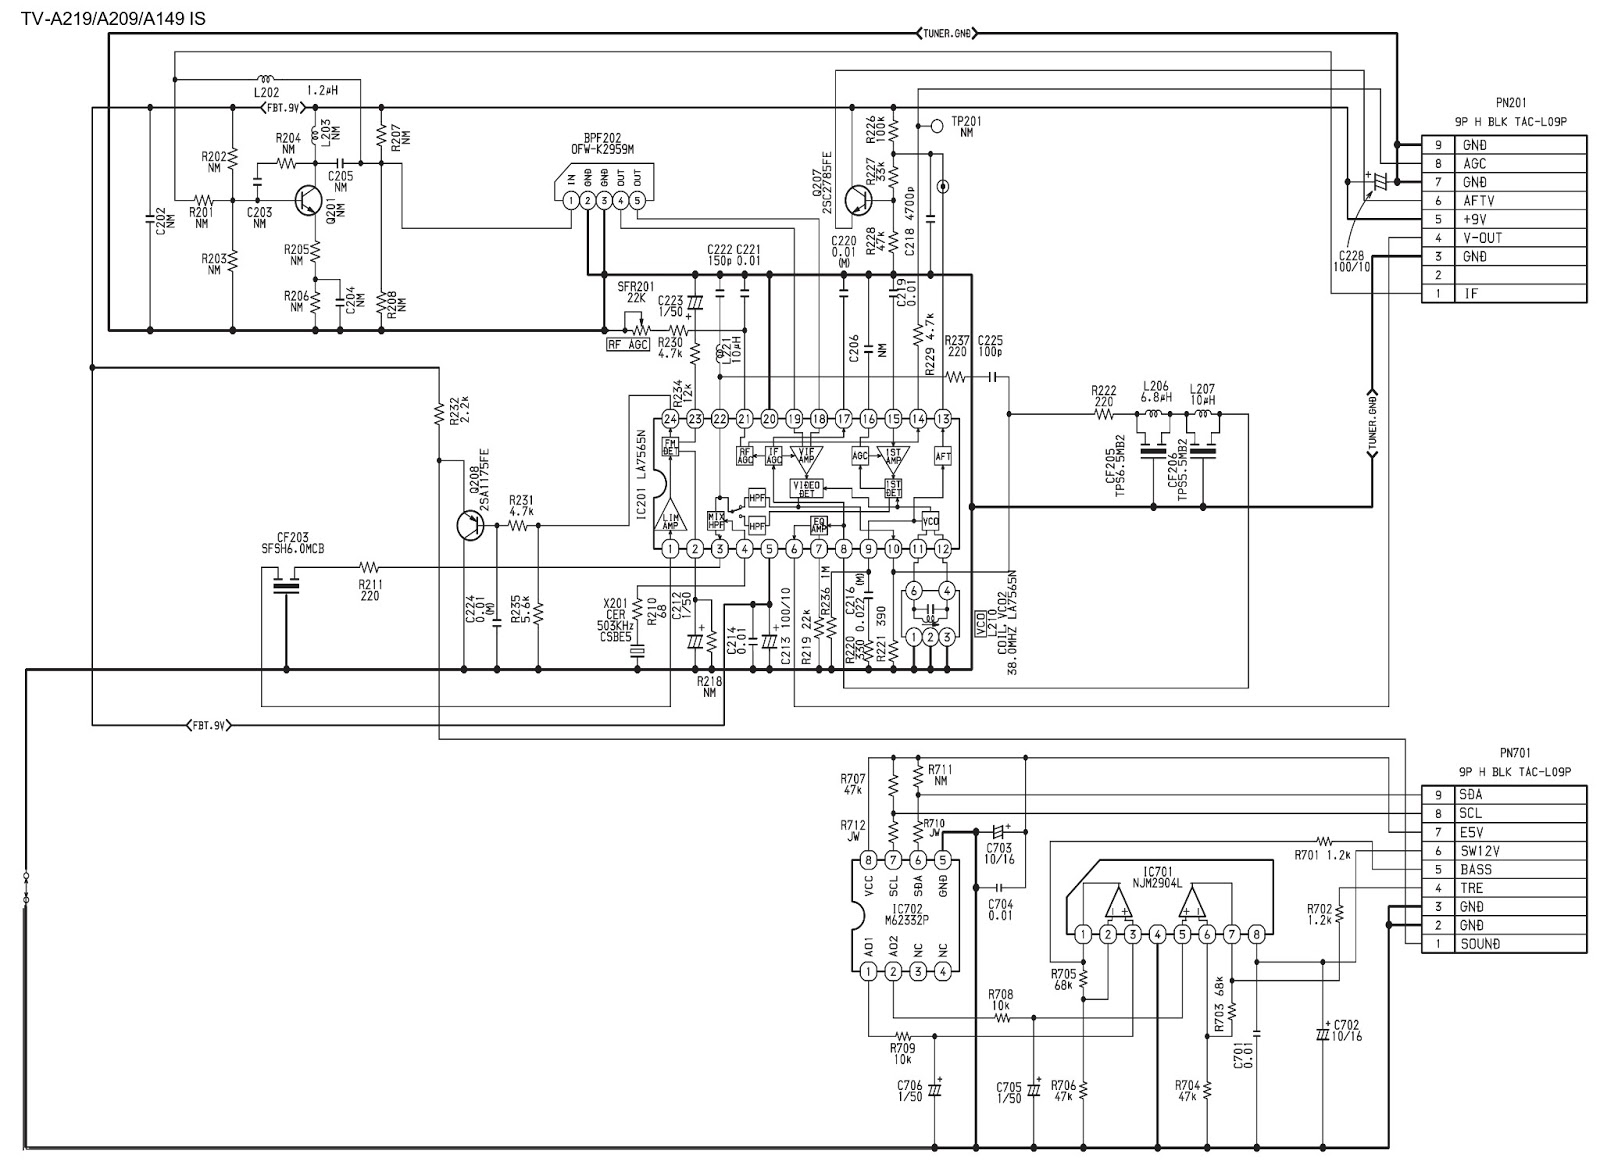 Aiwa Tv A 219 Schematic Diagram Using Ics Str S6707 Stereo Wiring Harness Sub Board